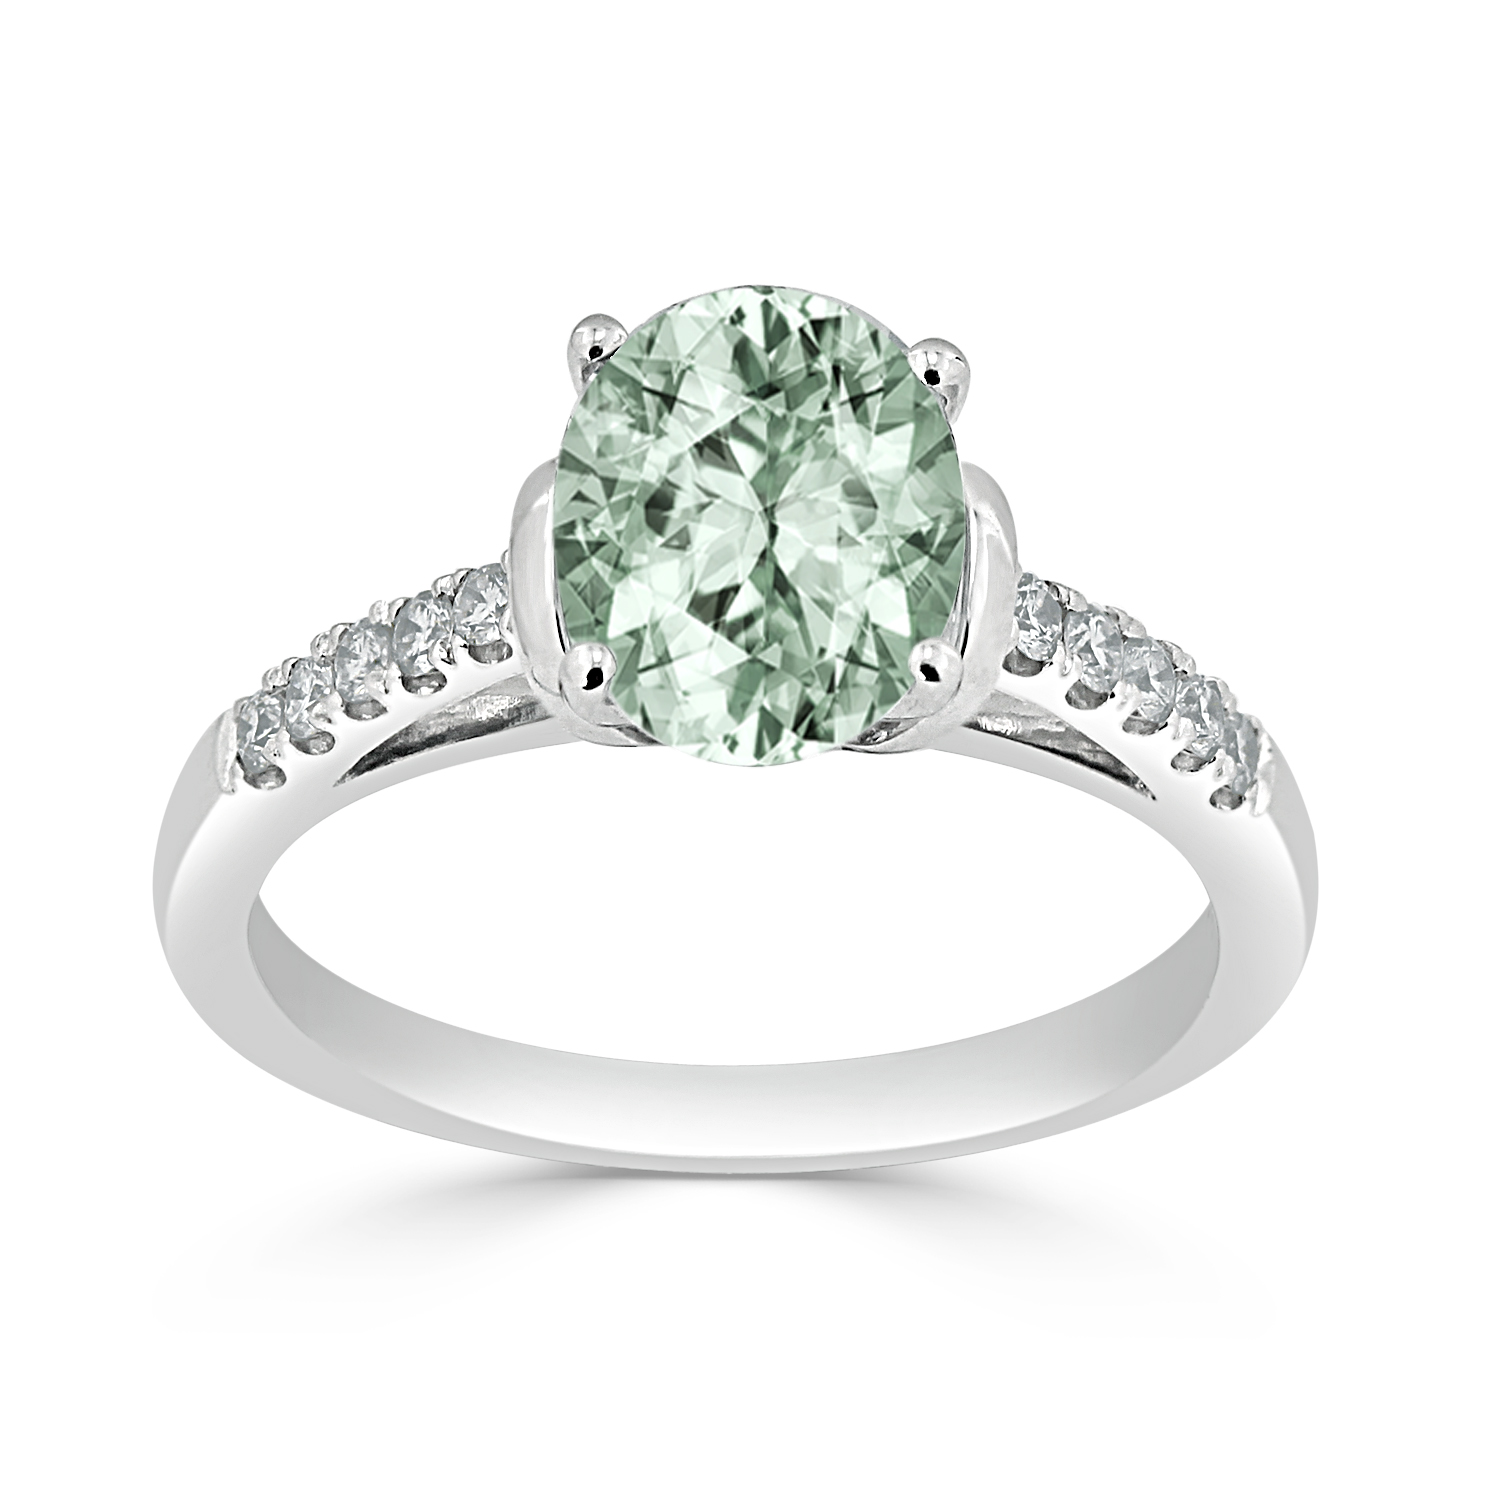 Halo Green Amethyst Diamond Ring in 14K White Gold with 1.30 carat Oval Green Amethyst